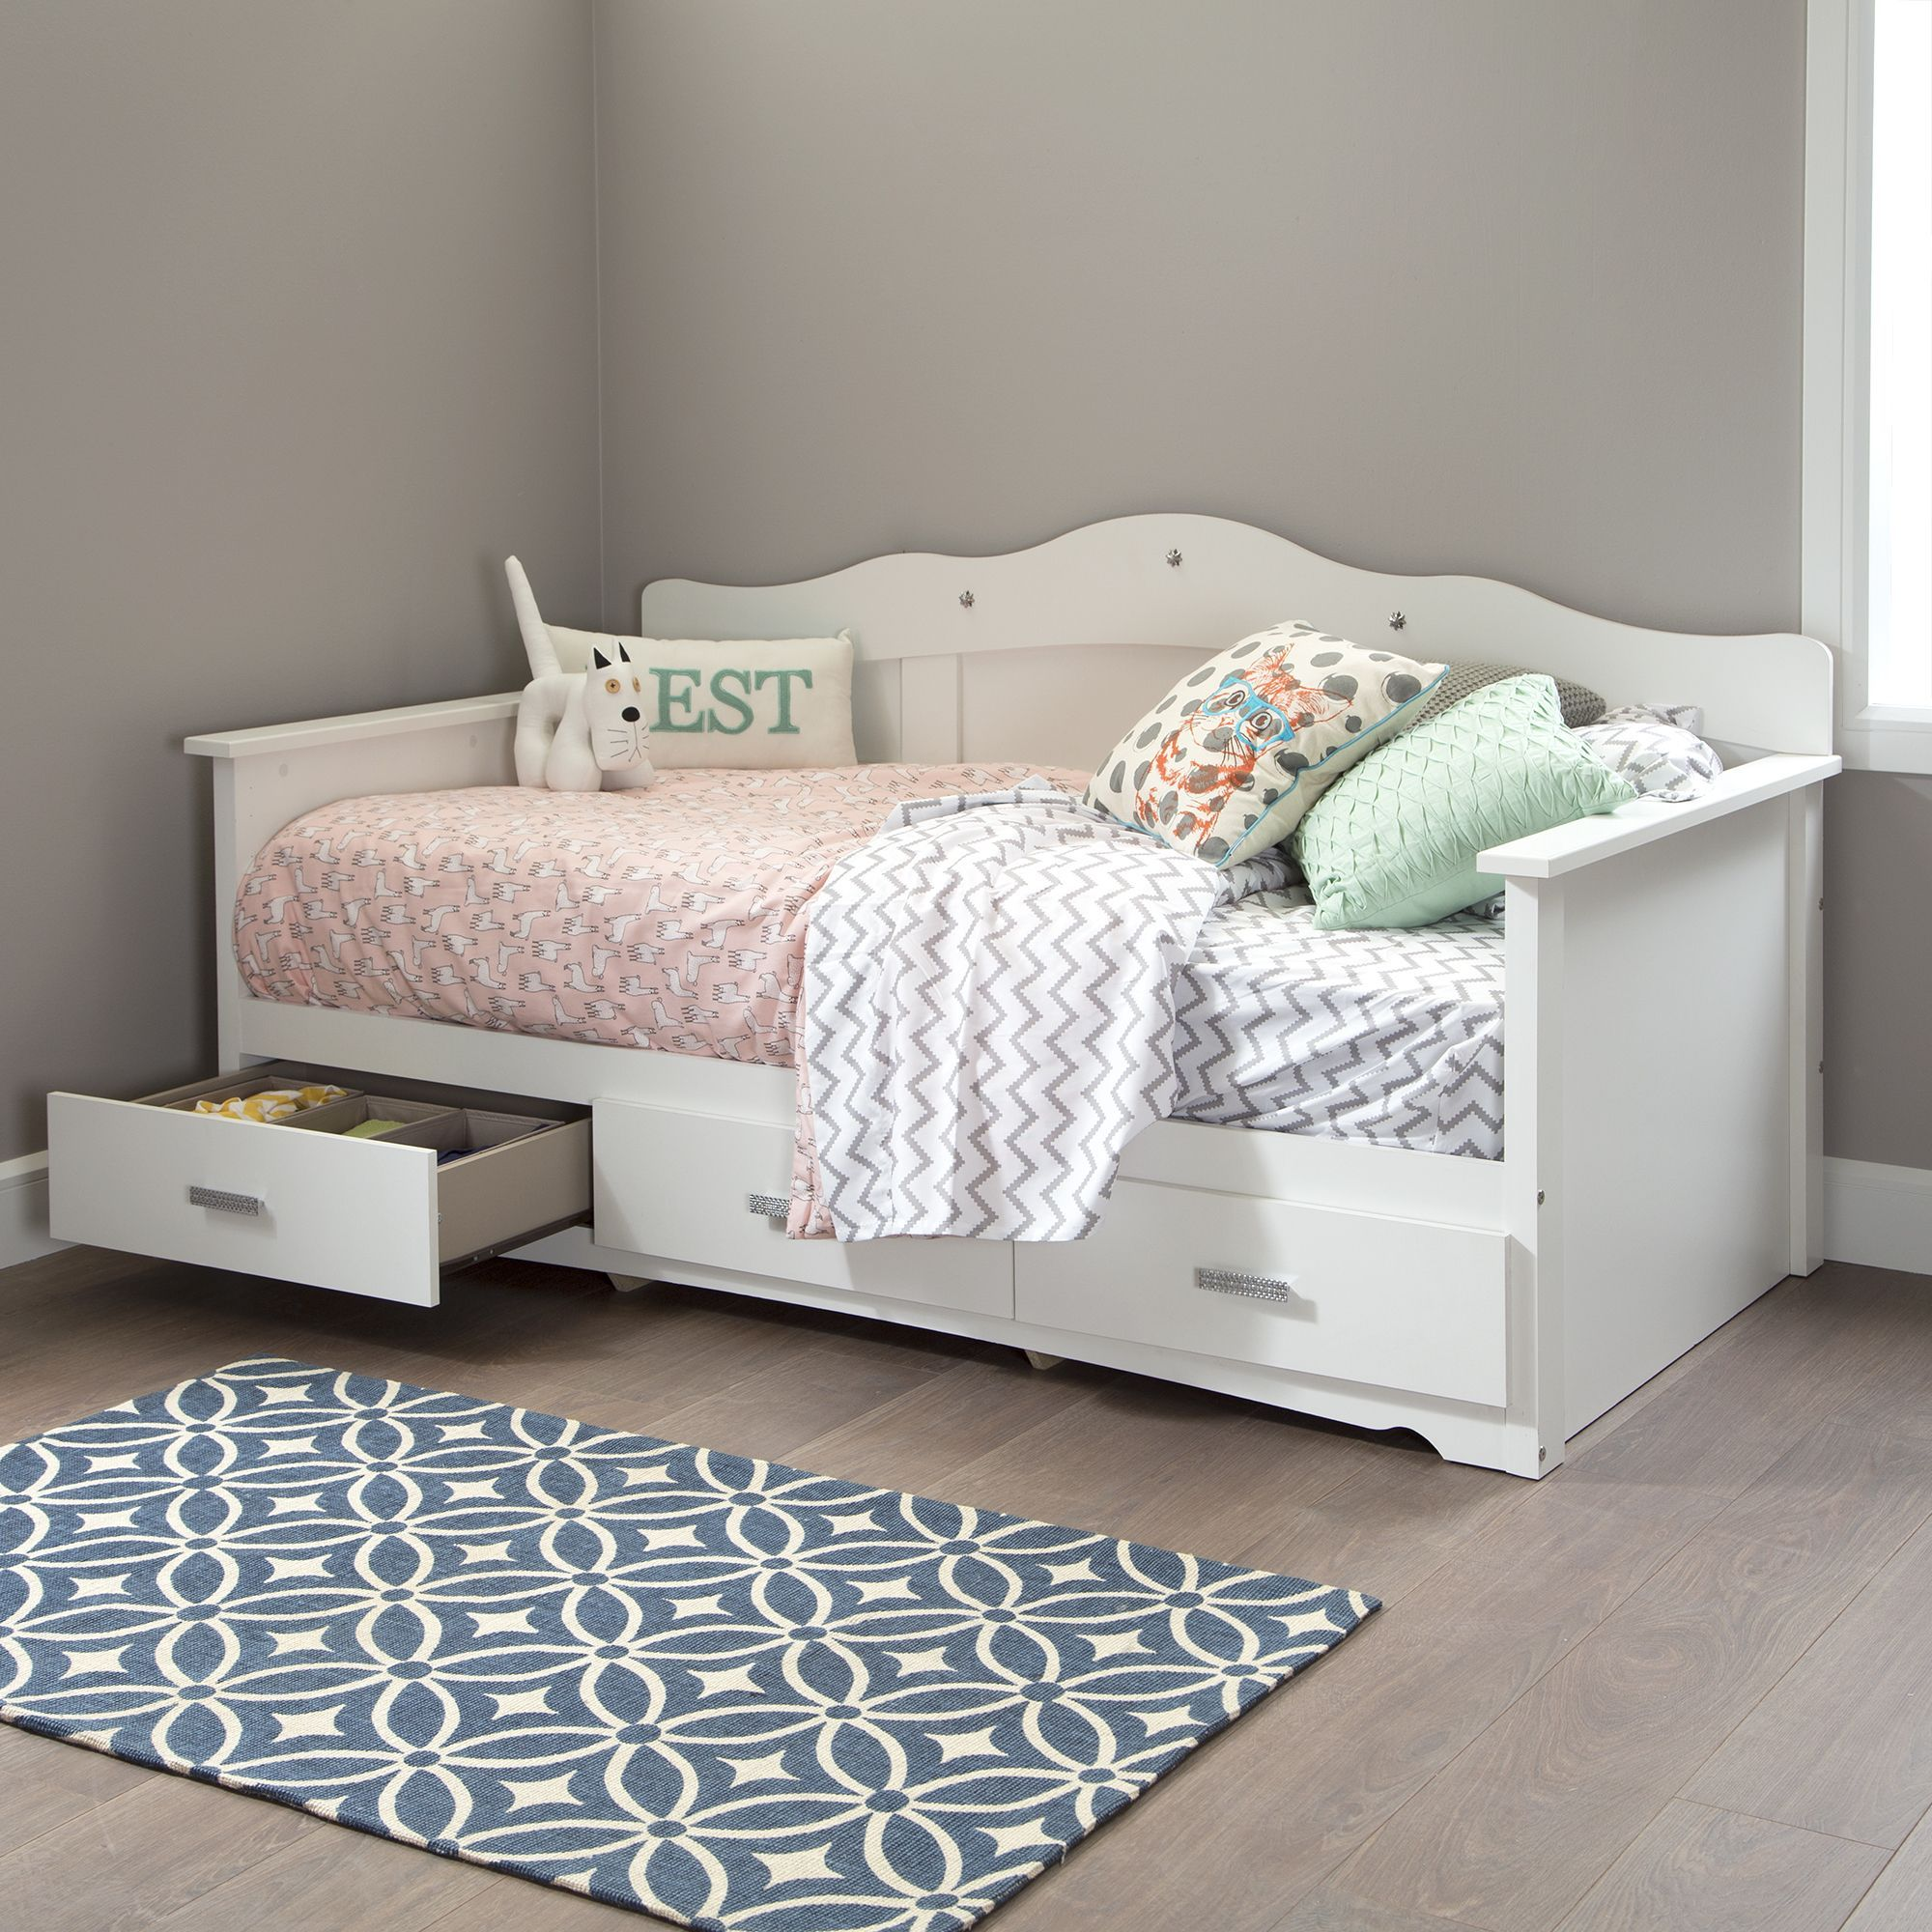 assorted quilt headboard twin queen drawers bookcase white full buy at and king only cheap storage yo beds online day with design furniture devyn wooden direct pics surprising s wood trundle daybed size bed farnichar color panel curvy tufted unique using daybeds headboards backless ideas of upholstered bedroom